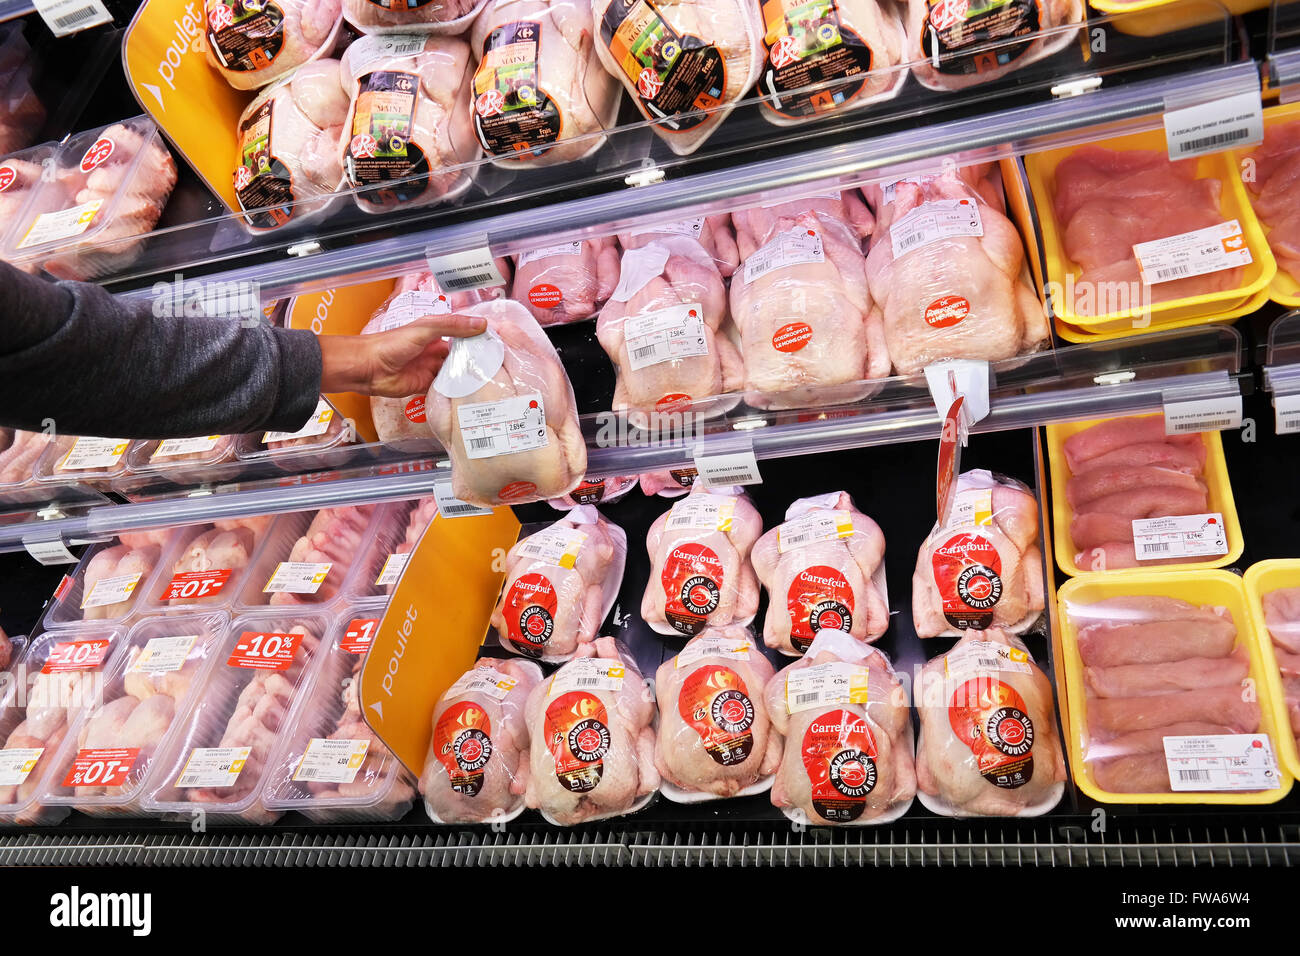 Customer selecting packaged chicken meat. - Stock Image